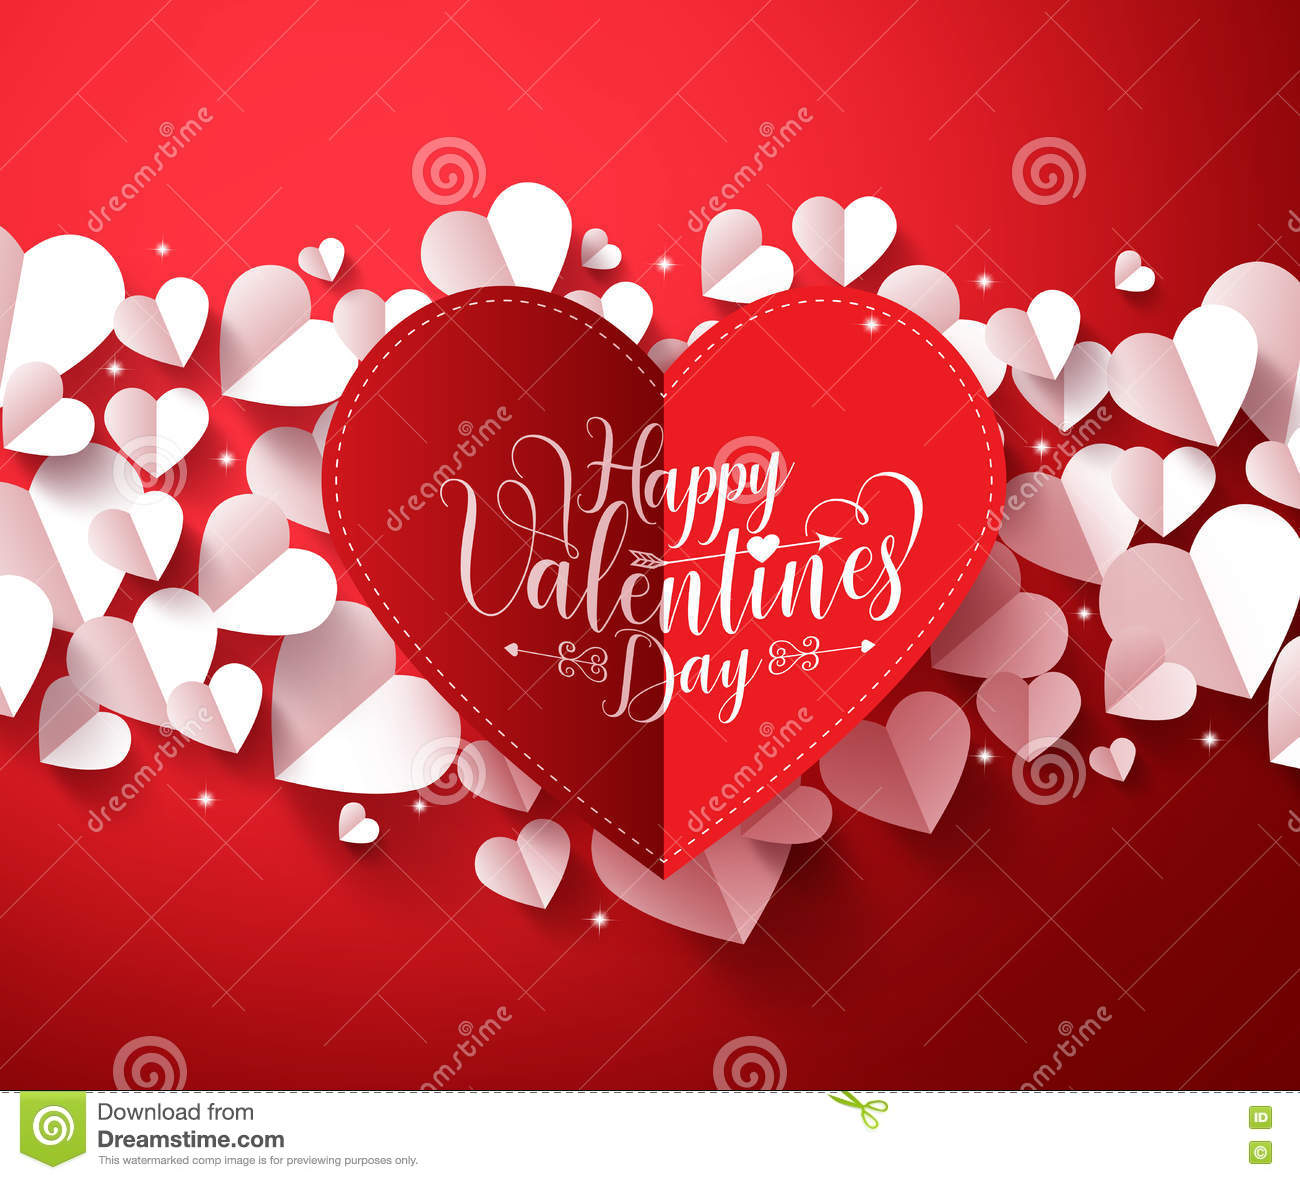 Valentines background concept in red color with happy valentines day valentines background concept in red color with happy valentines day greetings card m4hsunfo Choice Image